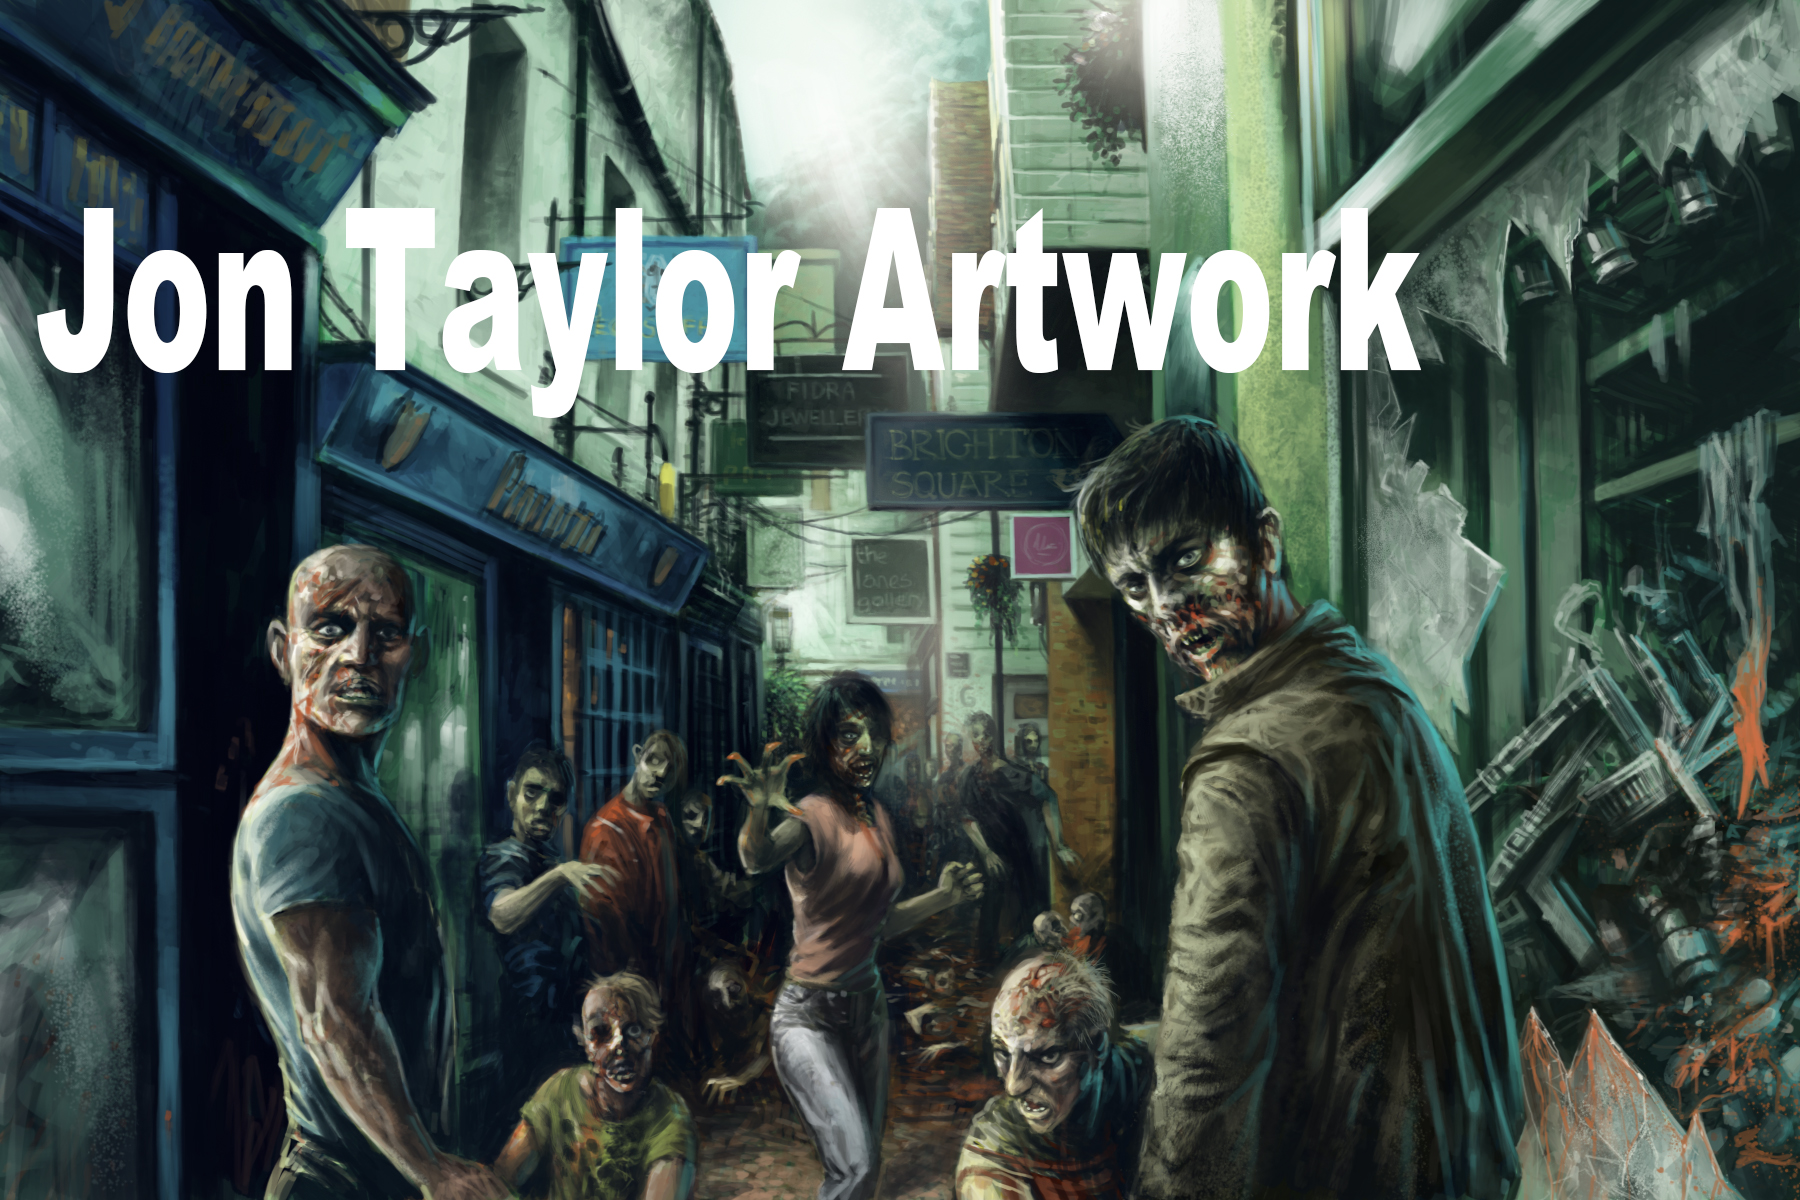 Jon Taylor Artwork